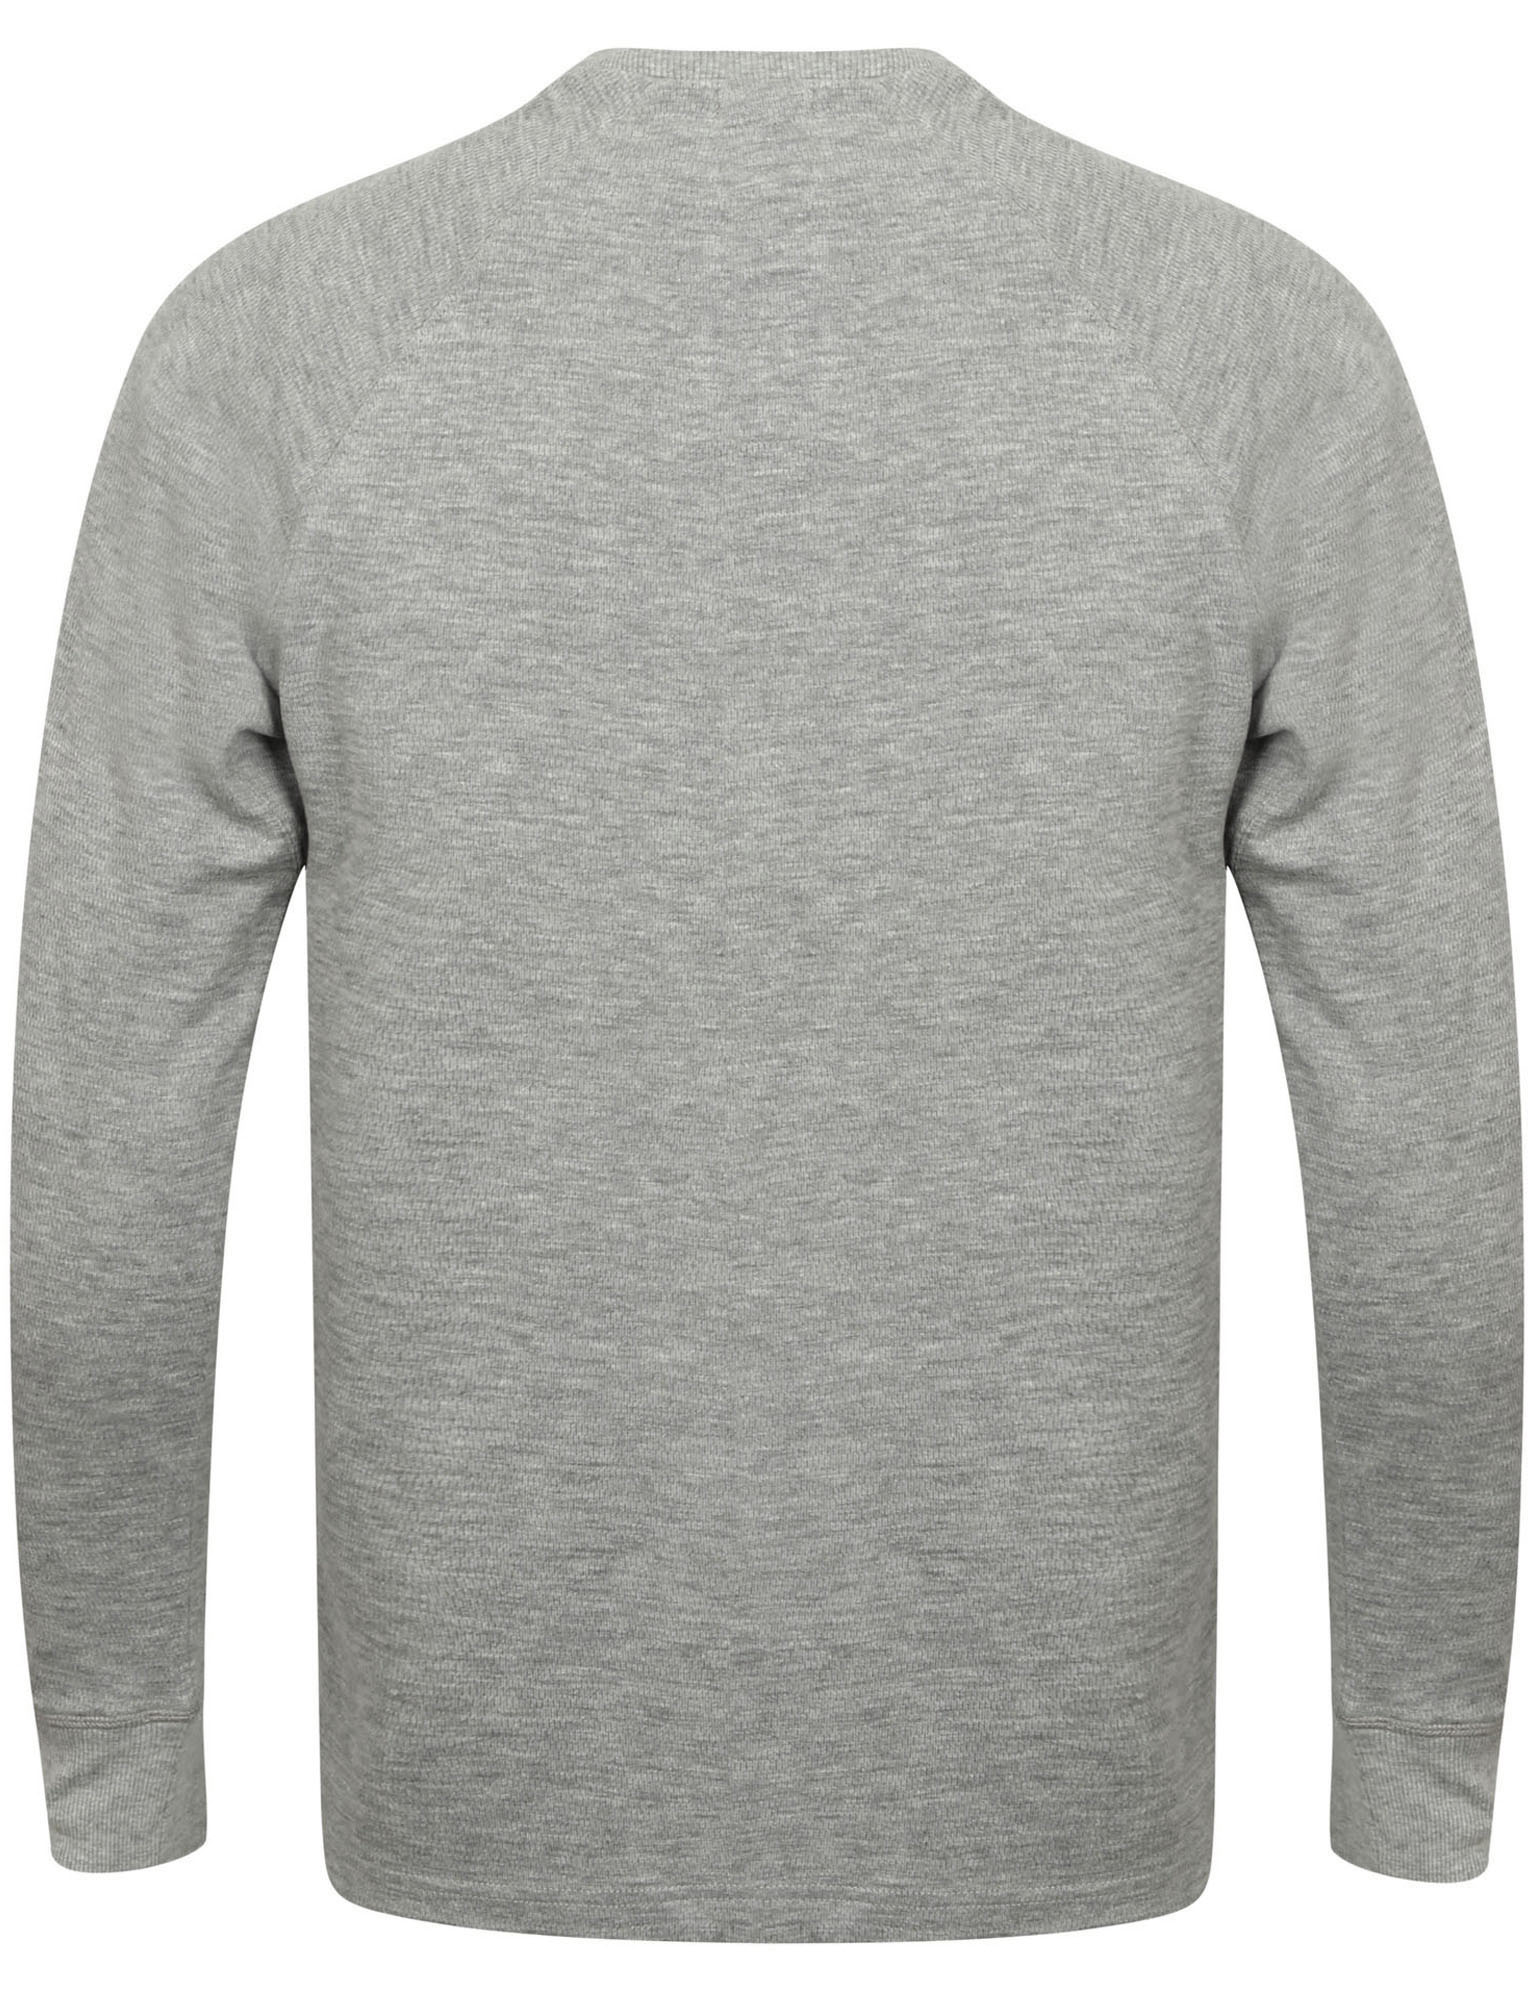 New-Mens-Tokyo-Laundry-Branded-Soft-Jersey-Long-Sleeve-Tops-T-Shirts-Size-S-XL thumbnail 3